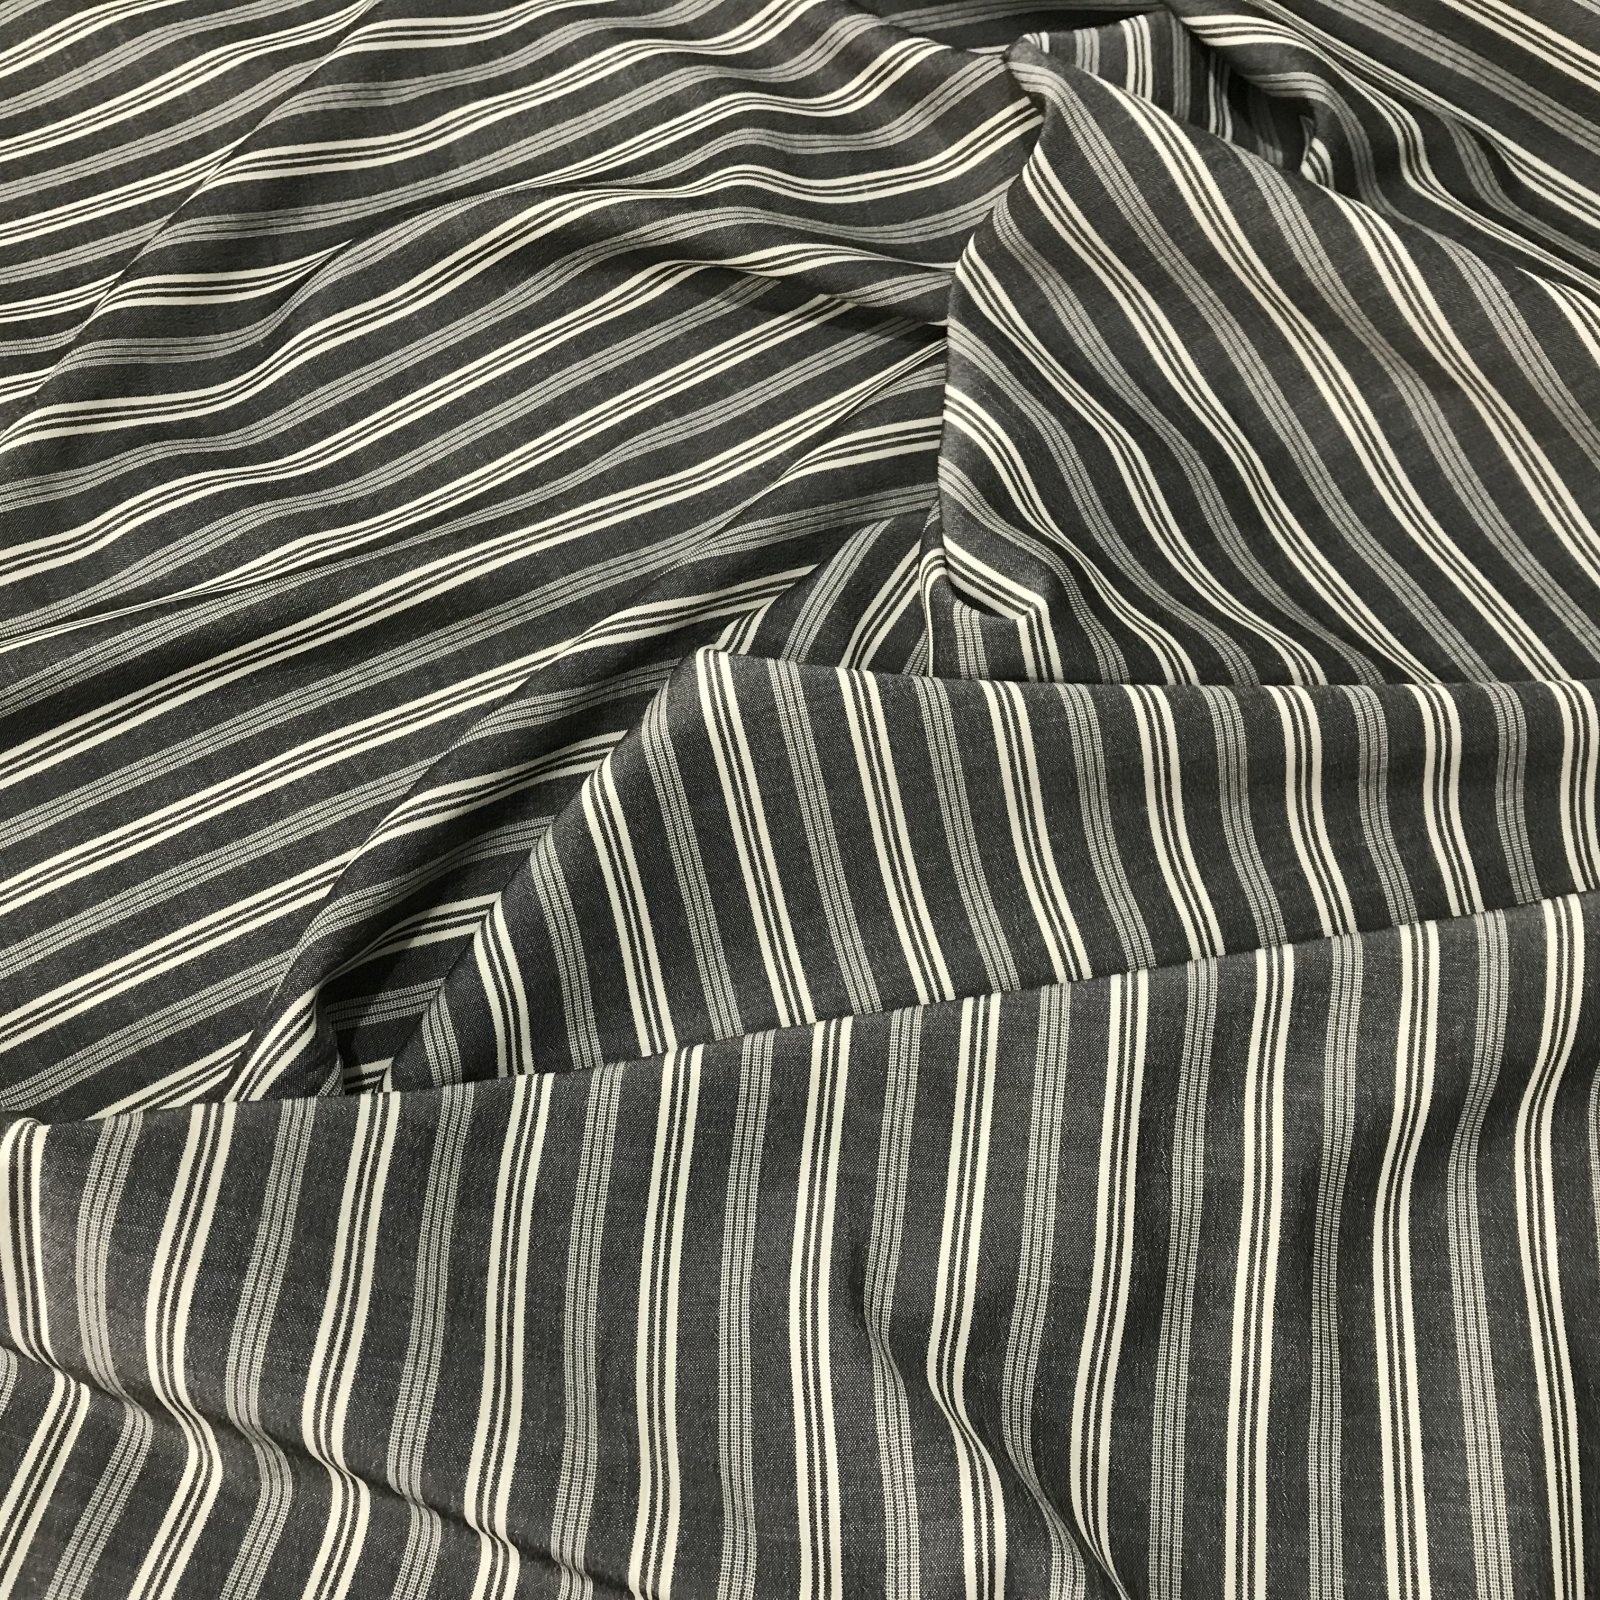 Rayon - Woven Stripes in Charcoal and Cream